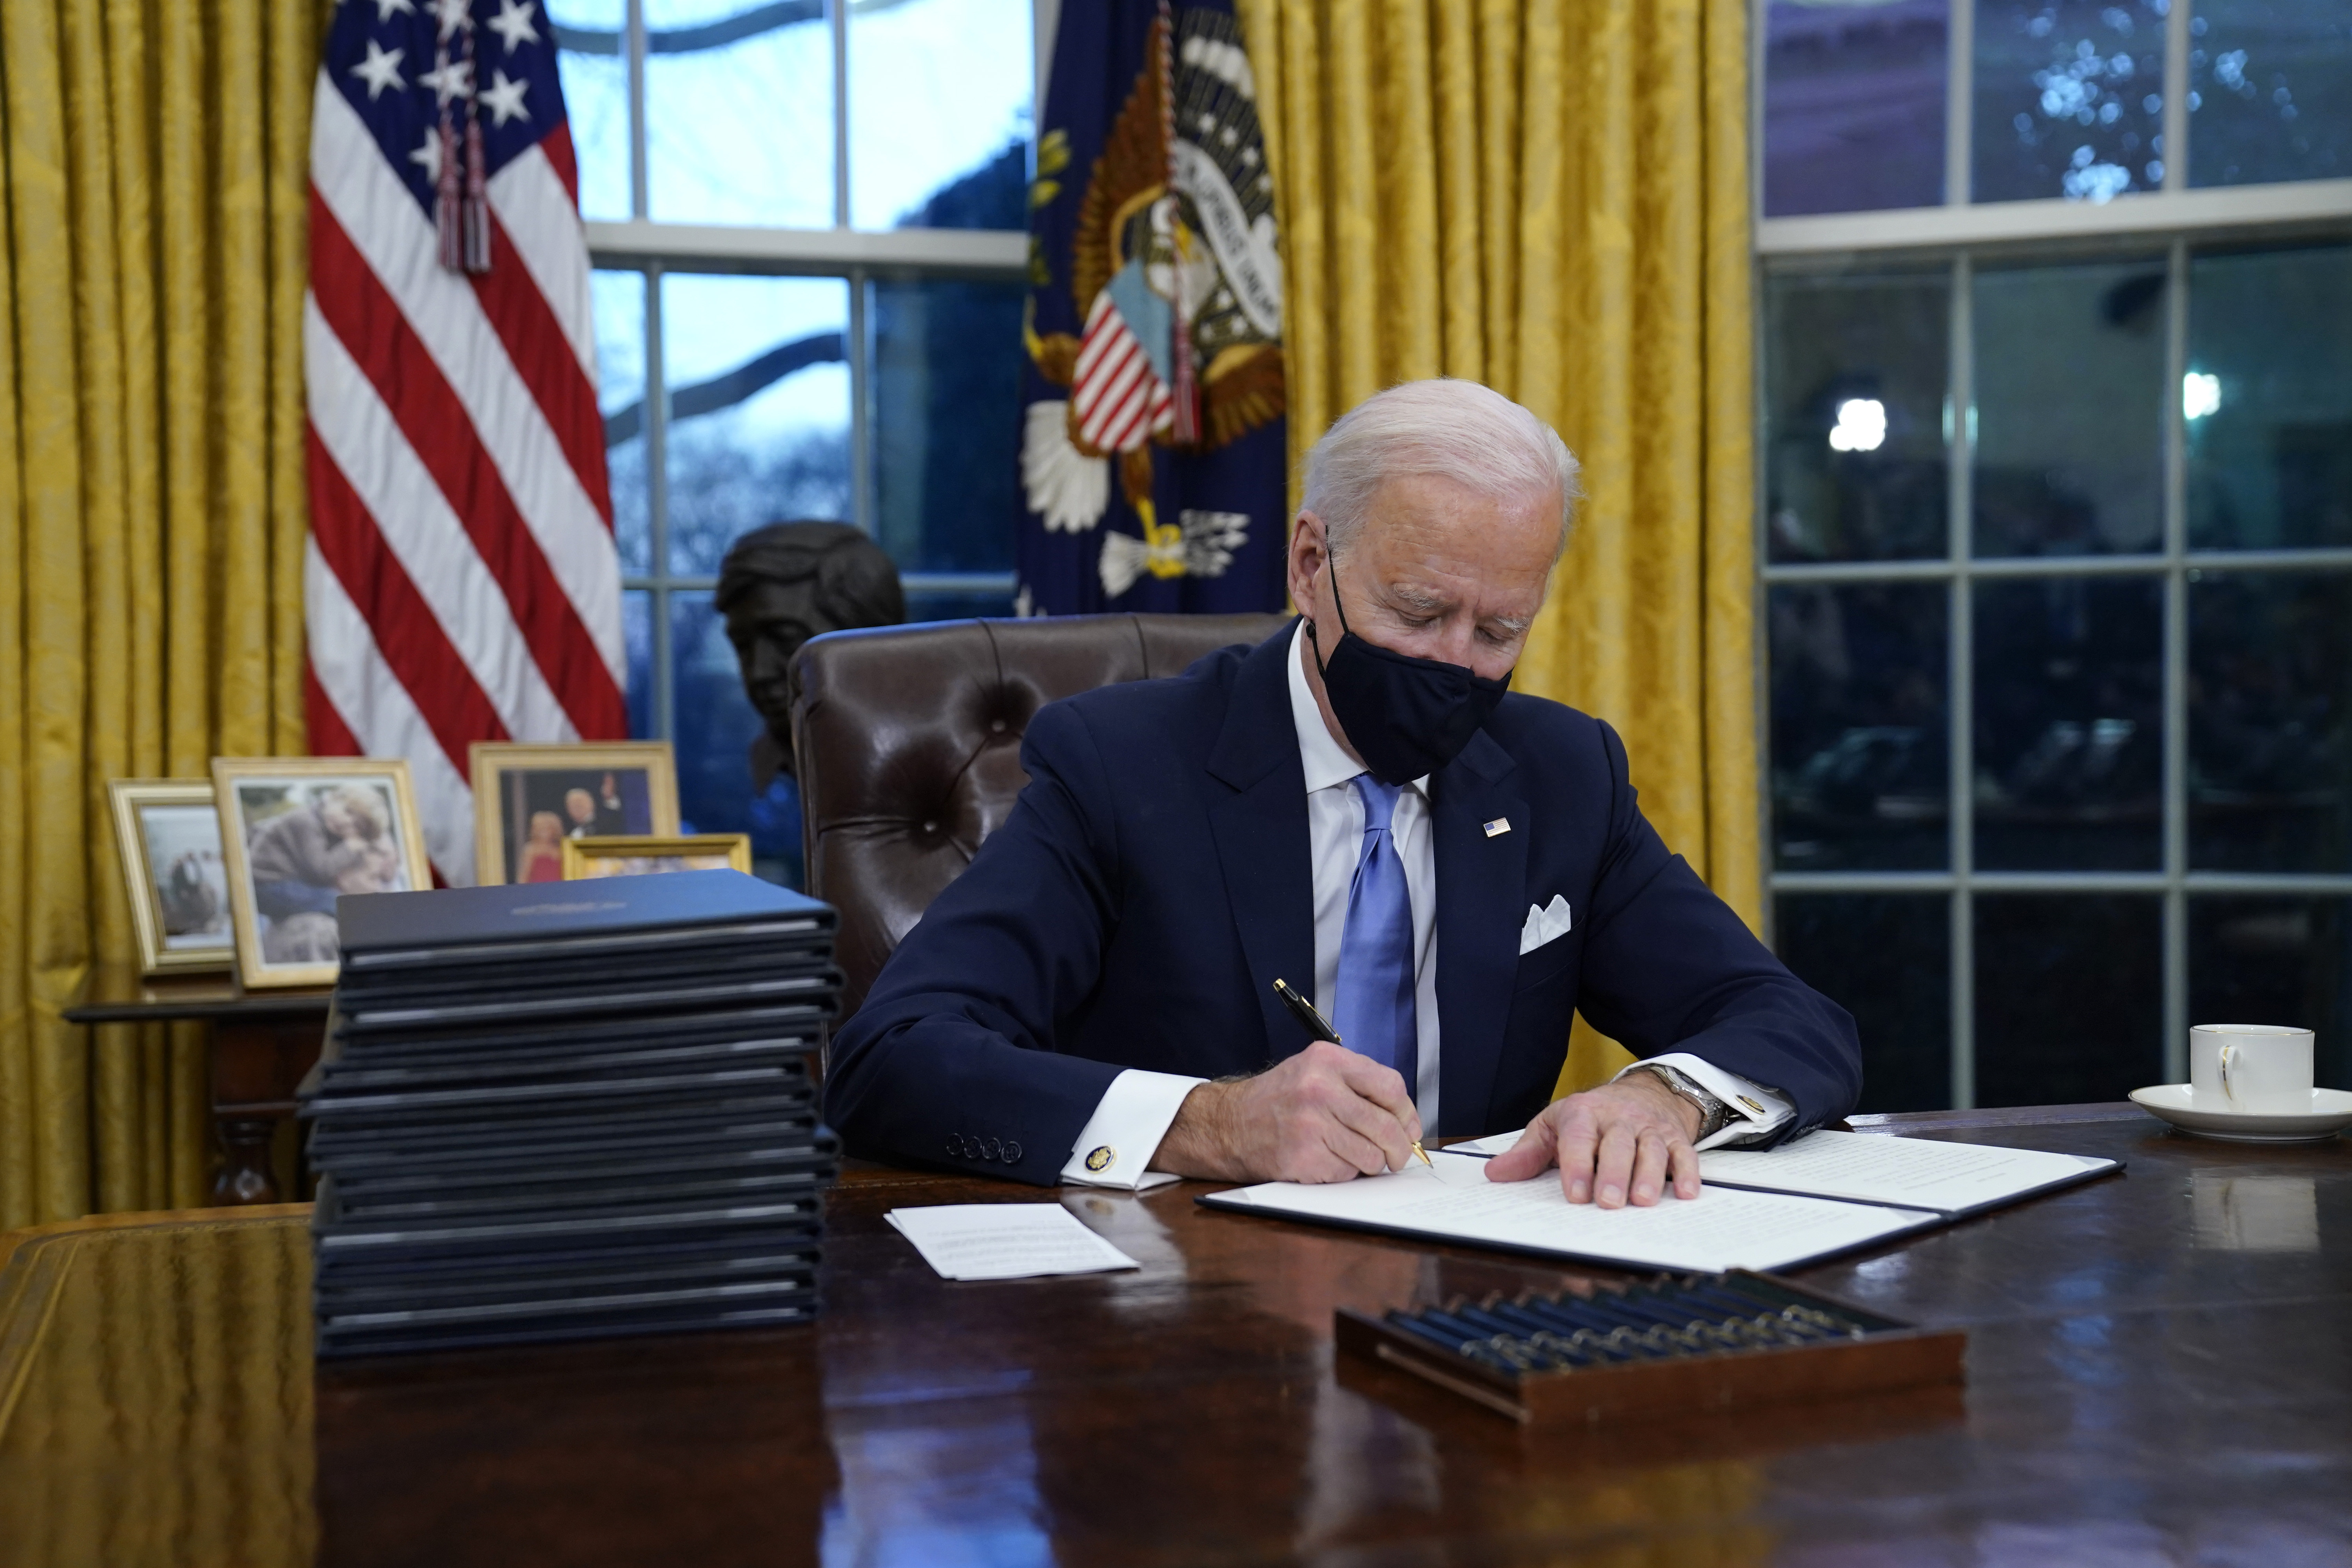 President Joe Biden signs his first executive order in the Oval Office of the White House on Wednesday, Jan. 20, 2021, in Washington.u00a0Photo: AP